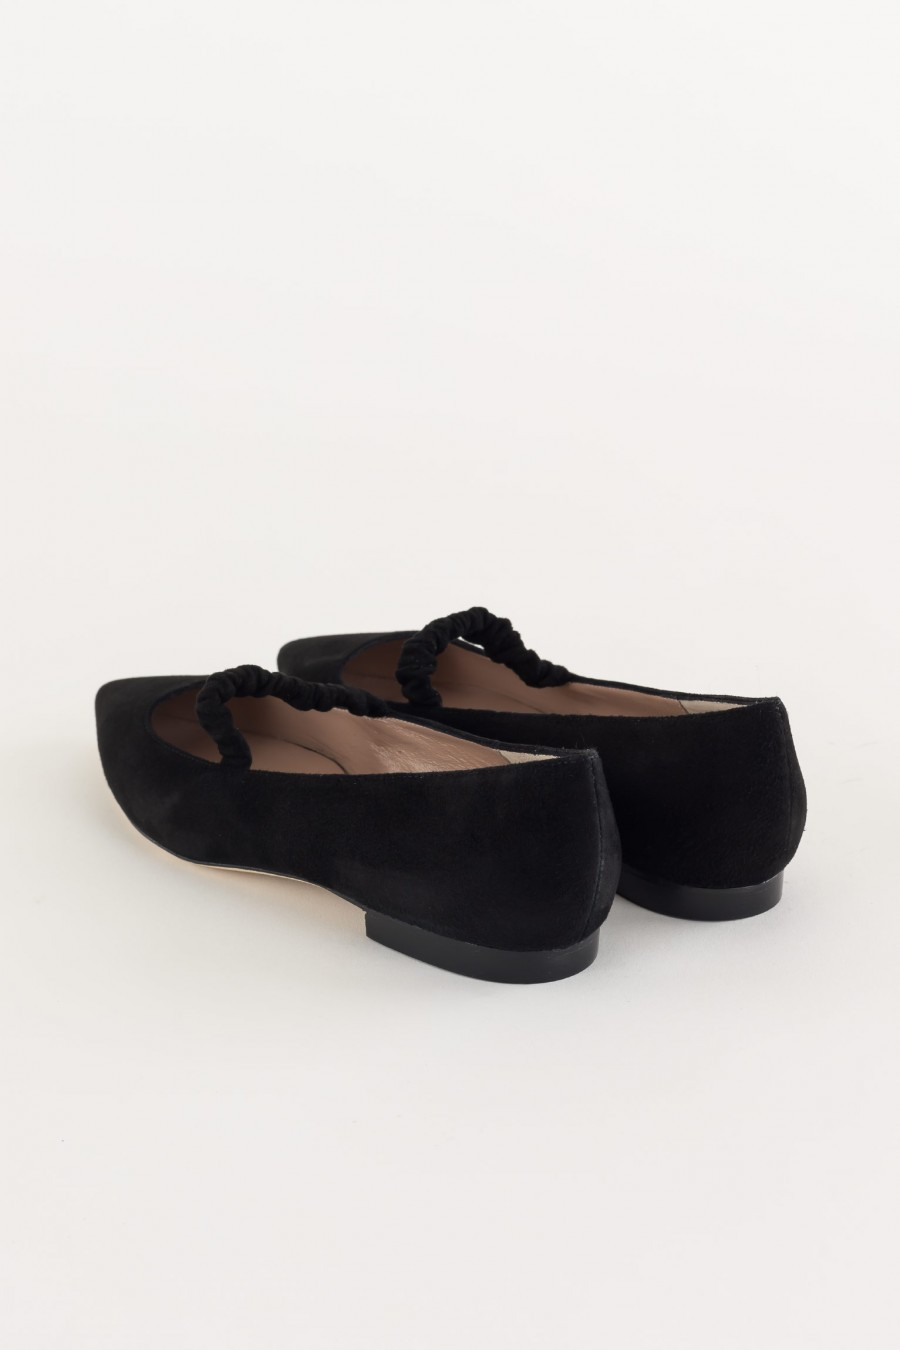 Ballerine block color nere